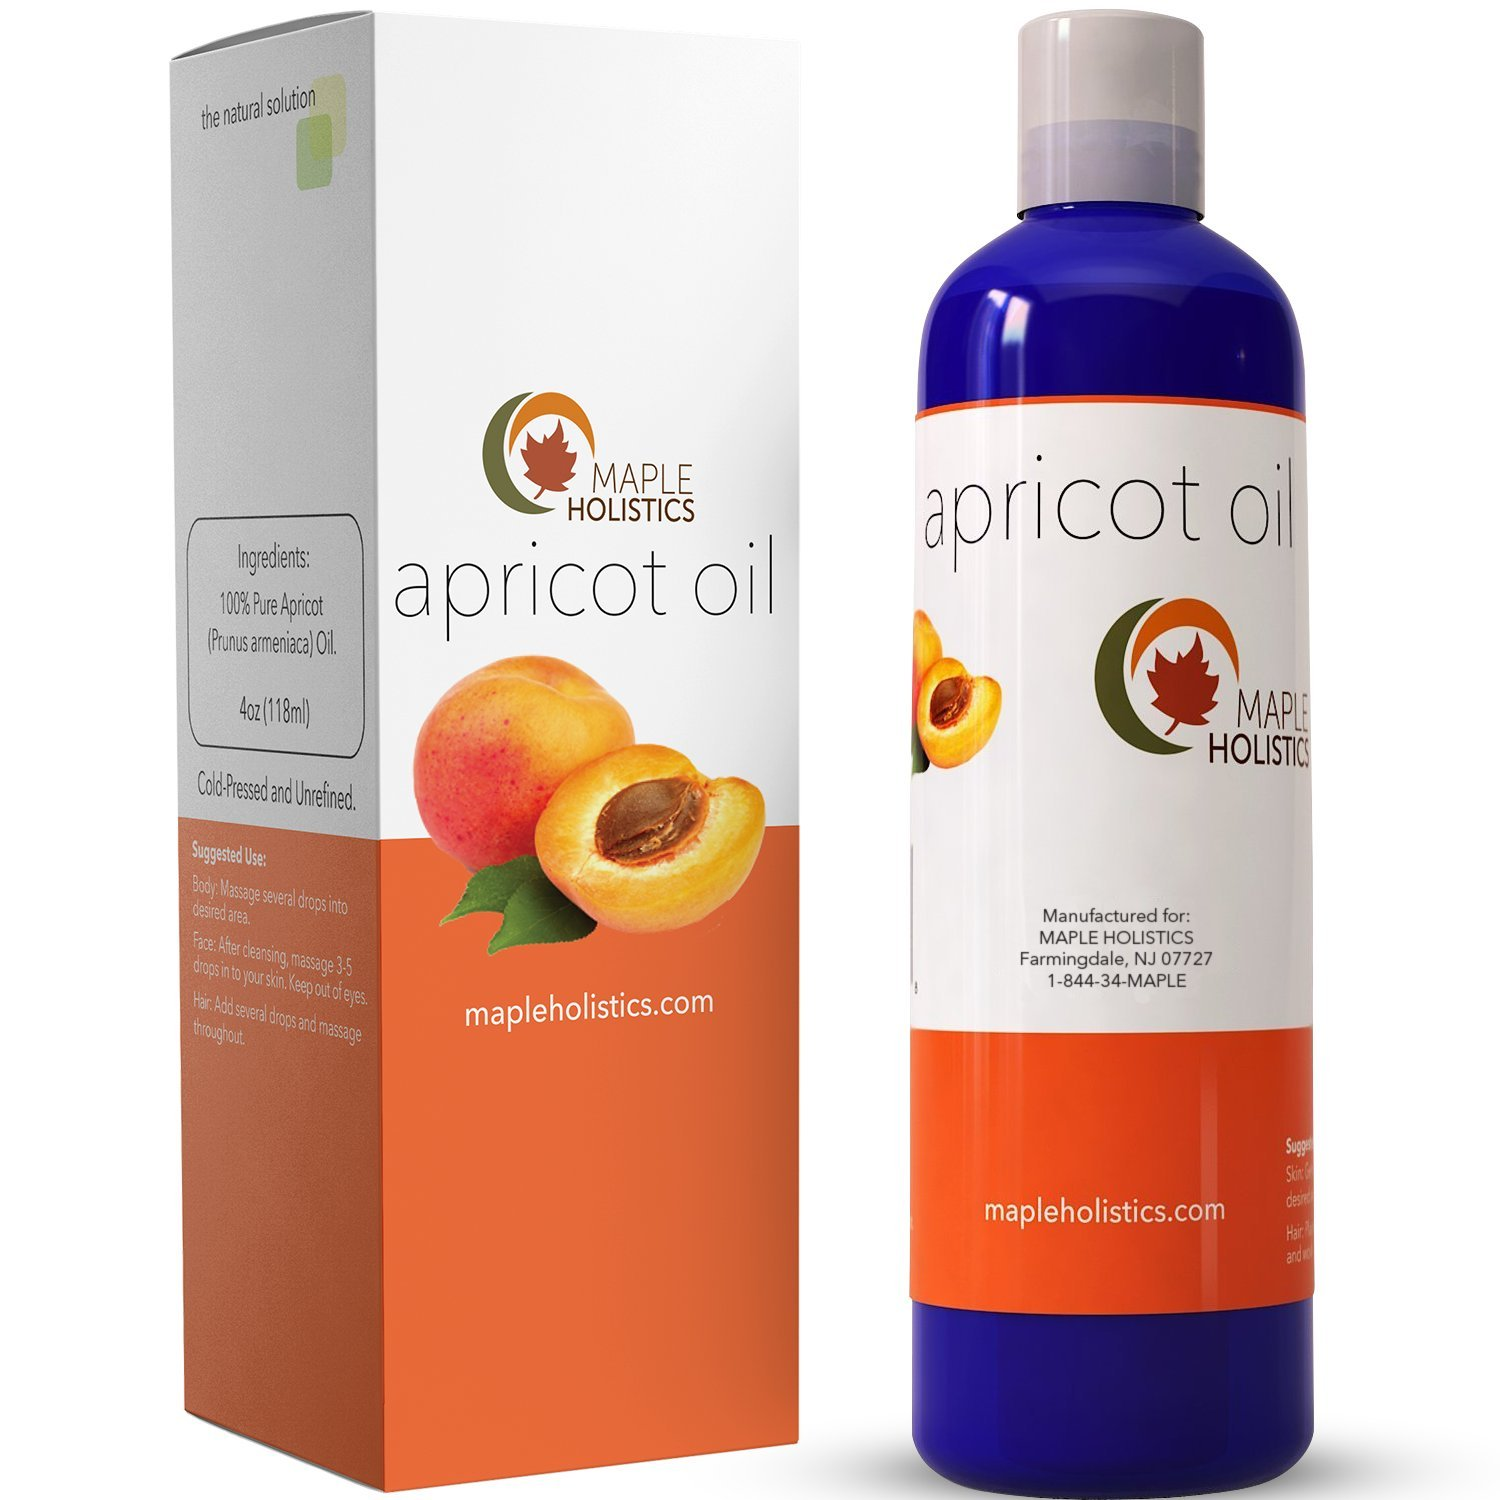 Apricot Kernel Seed Oil for Skin Hair Growth & Face - Pure Cold Pressed Carrier Oil for Massages & Aromatherapy - Beauty Oil Moisturizer with Anti-Aging Benefits - Natural Skin Care for Women & Men